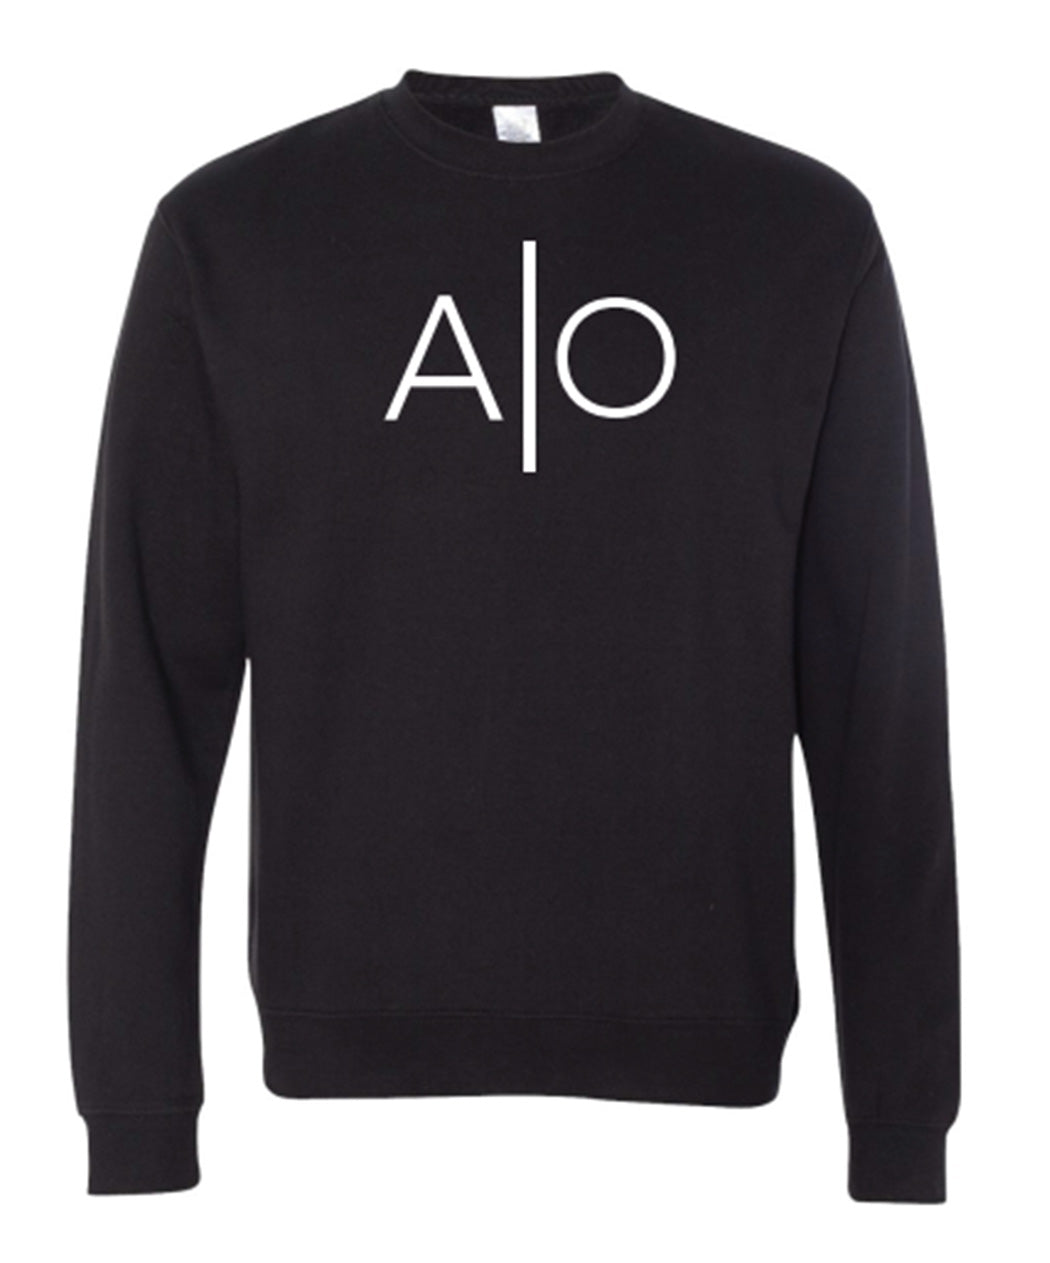 Alpha Omnia Black Crewneck